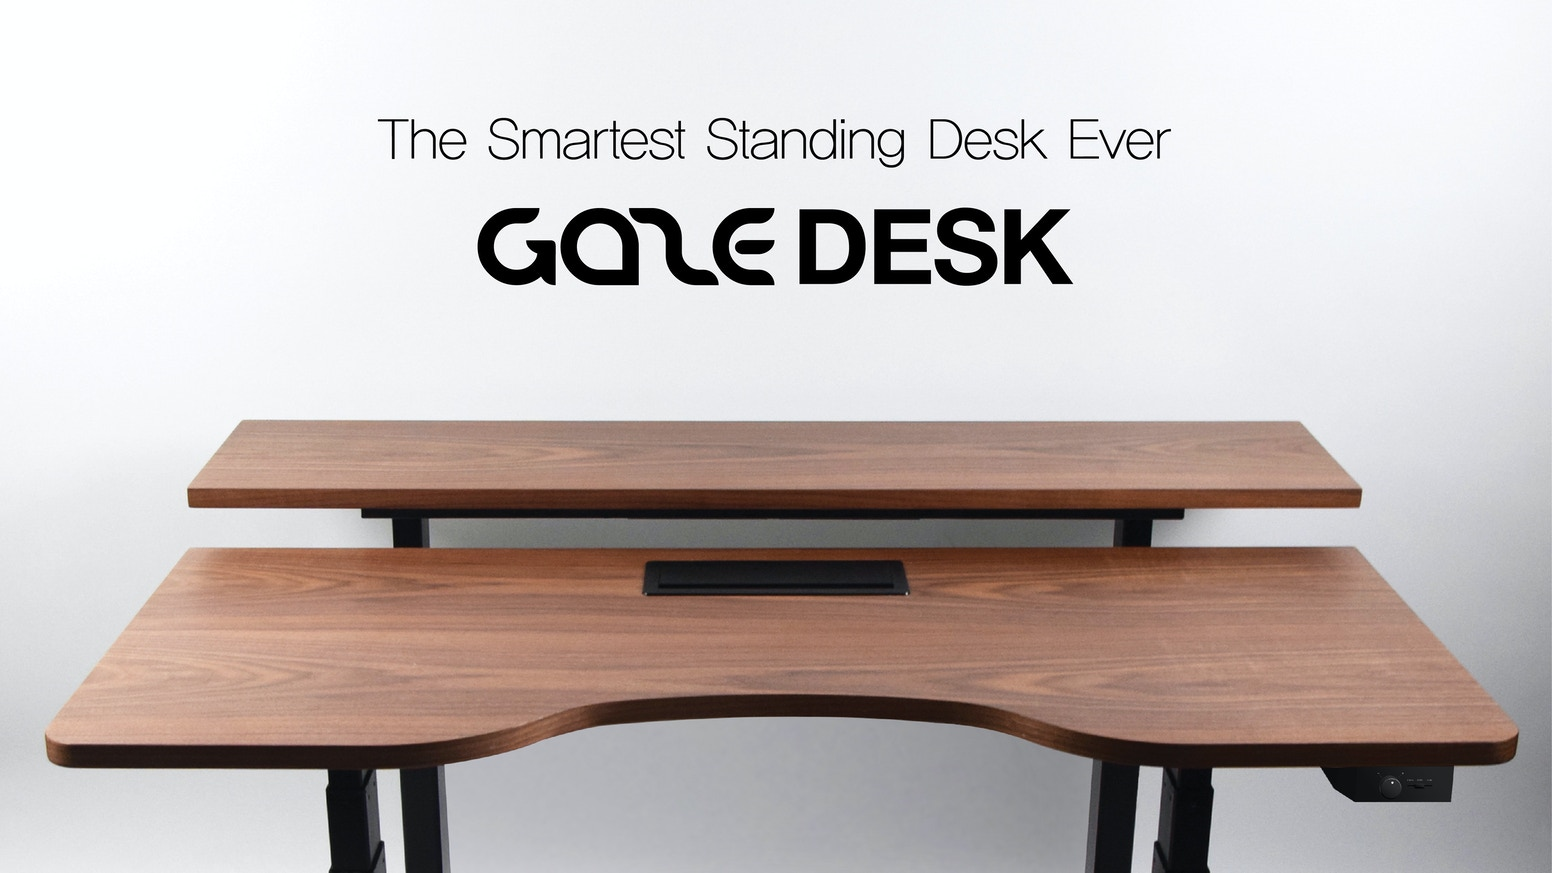 The World's Smart Standing Desk Ever. Dual Lift system and Bluetooth connectivity help you create the perfect sit-stand workstation.